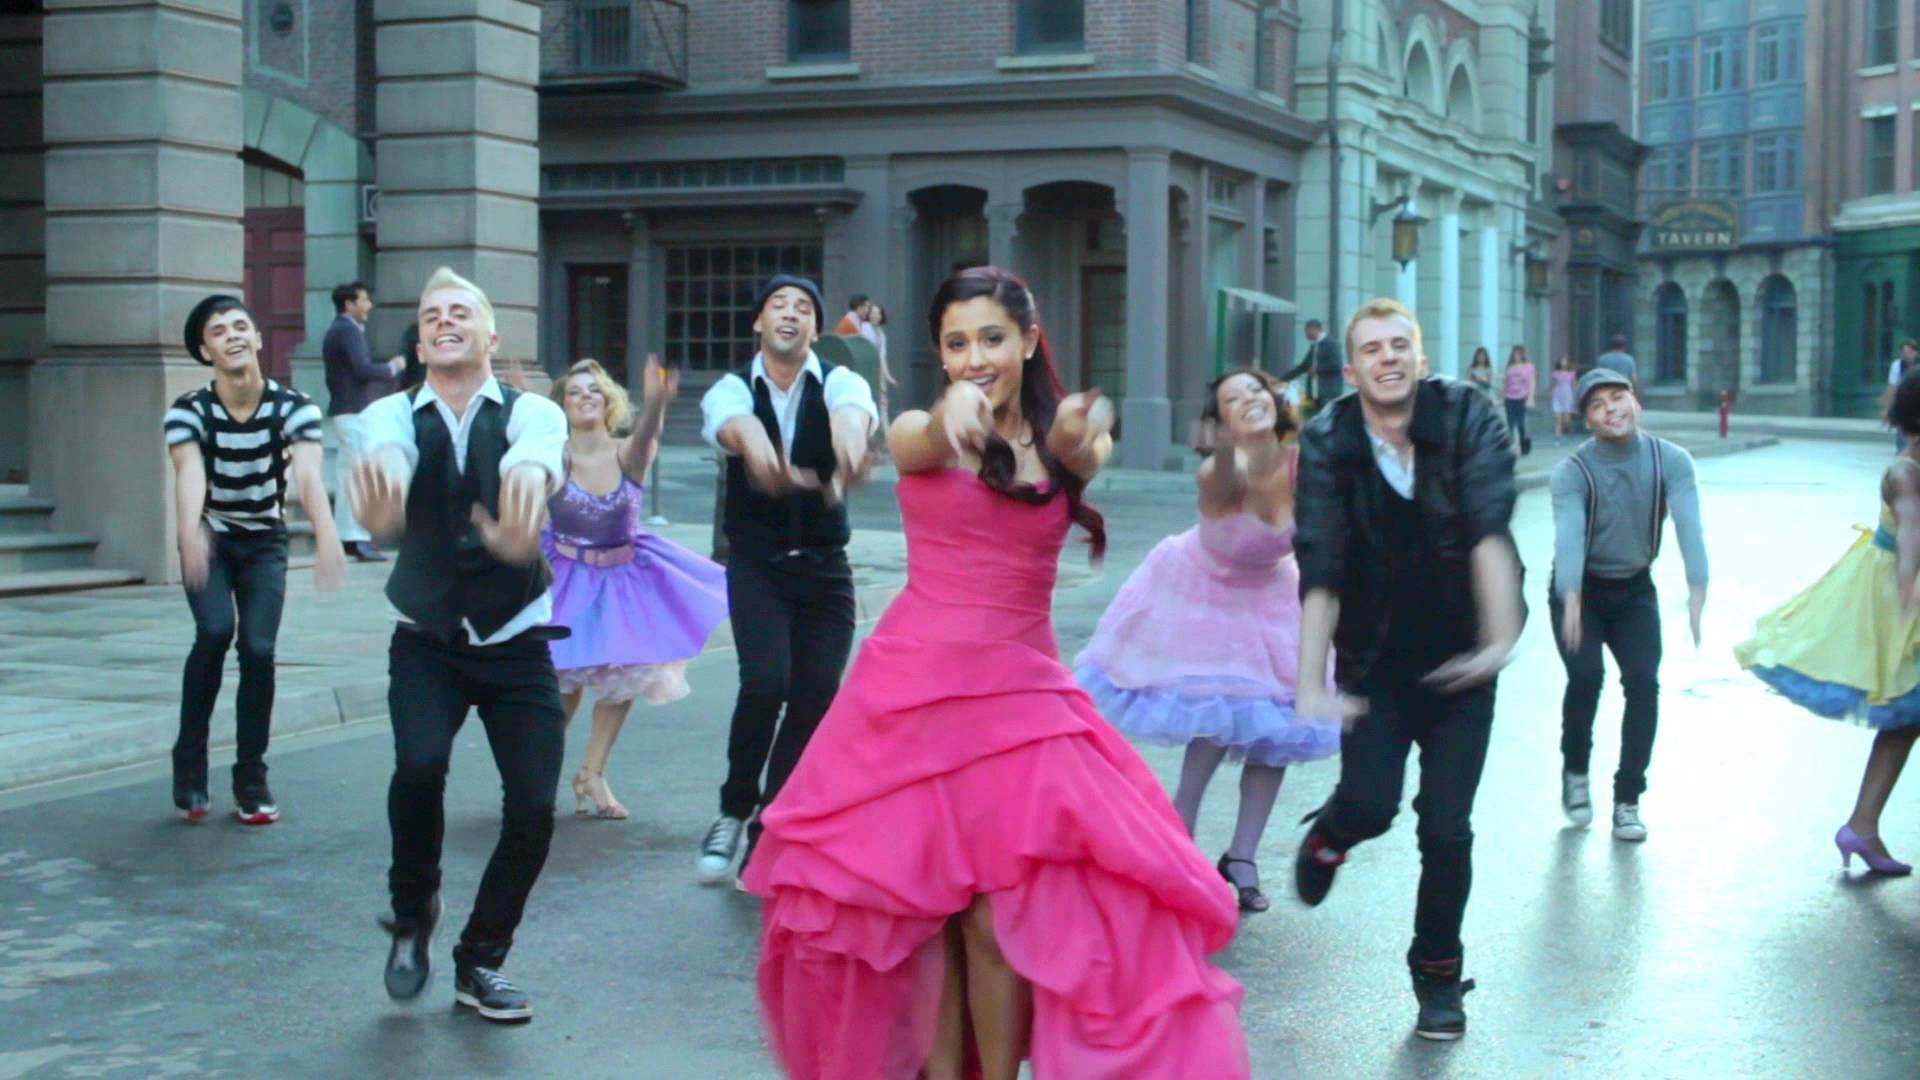 Ariana Grande Put Your Hearts Up Randomly Looking Around And